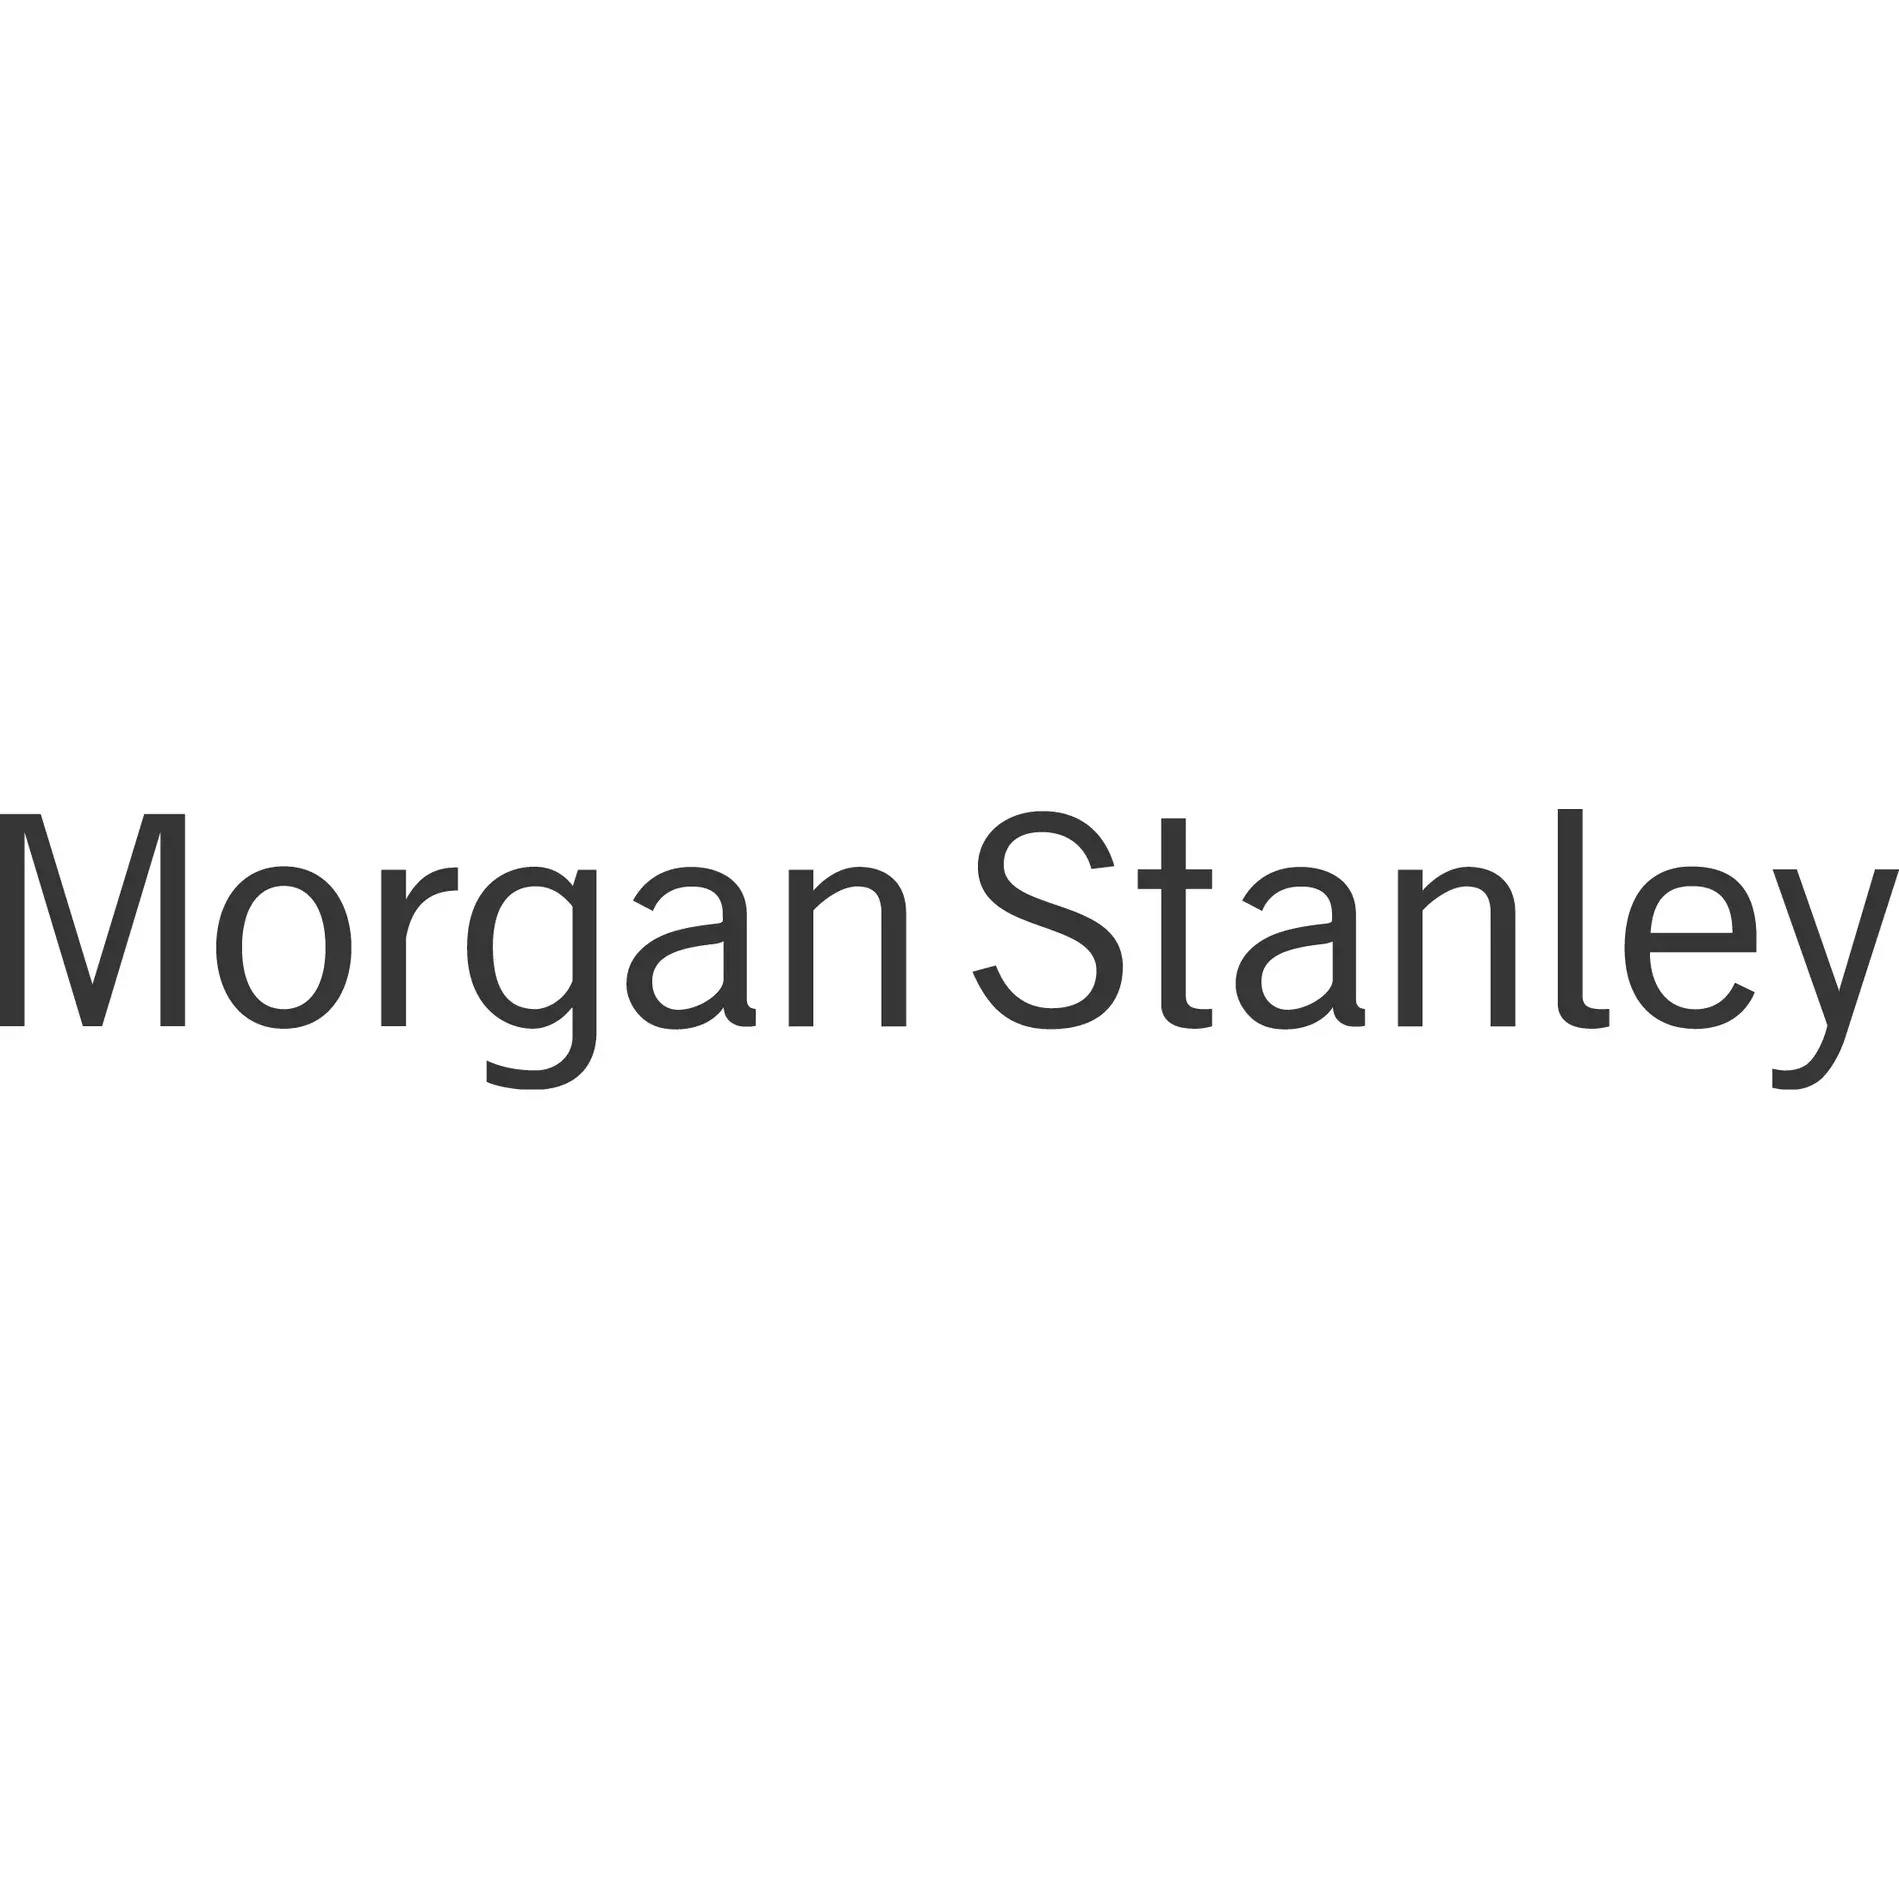 The Williams Group - Morgan Stanley